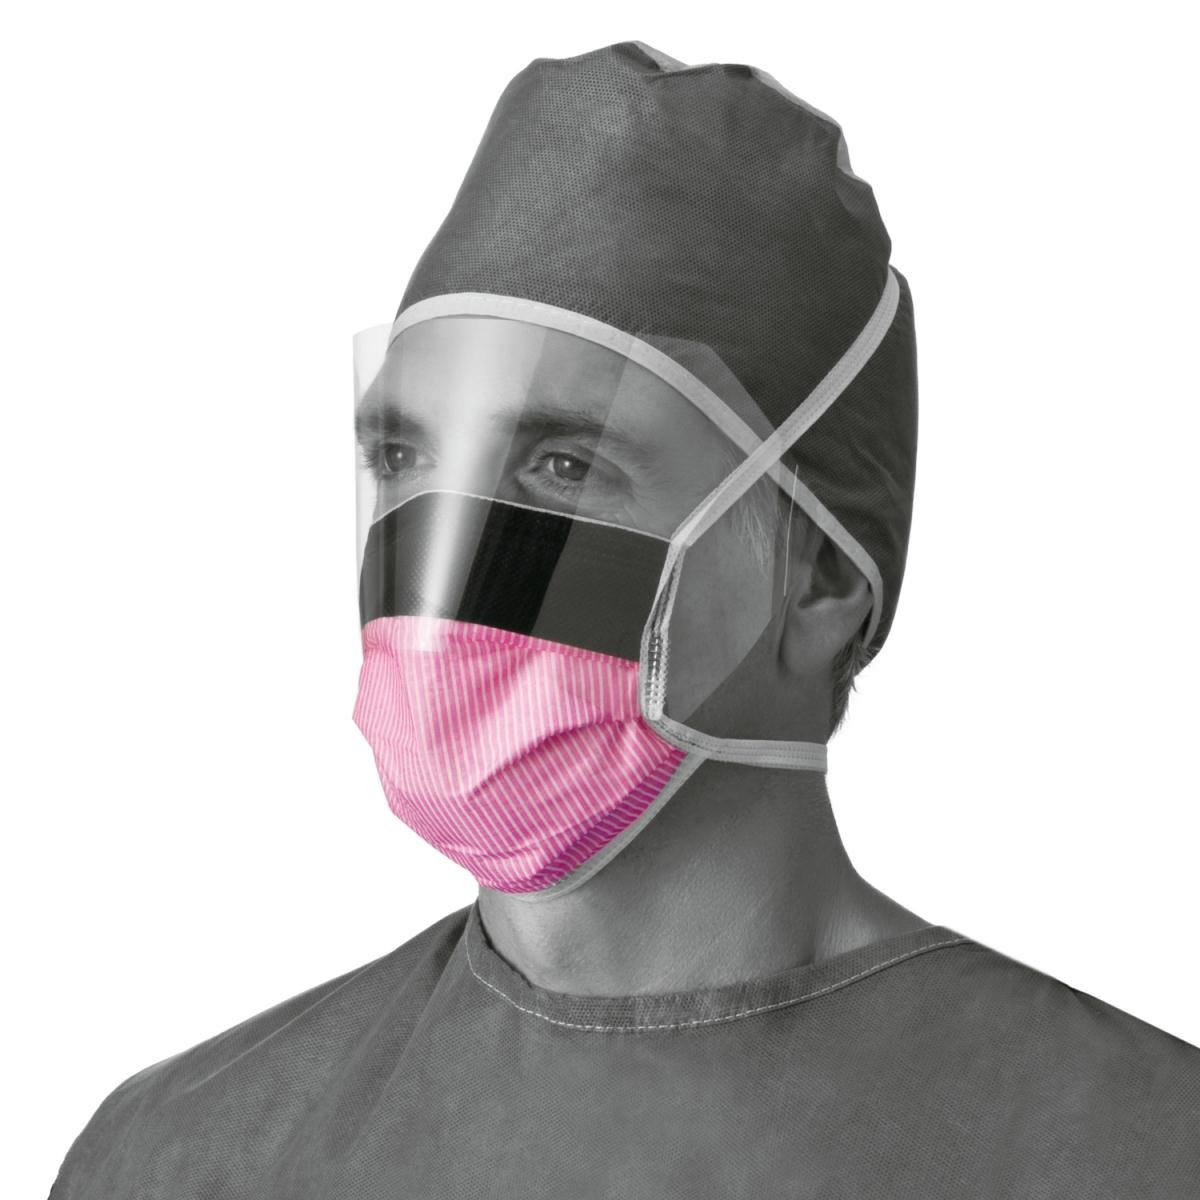 Medline Fluid-Resistant Surgical Face Masks with Eyeshield,Purple, 100 Each / Case